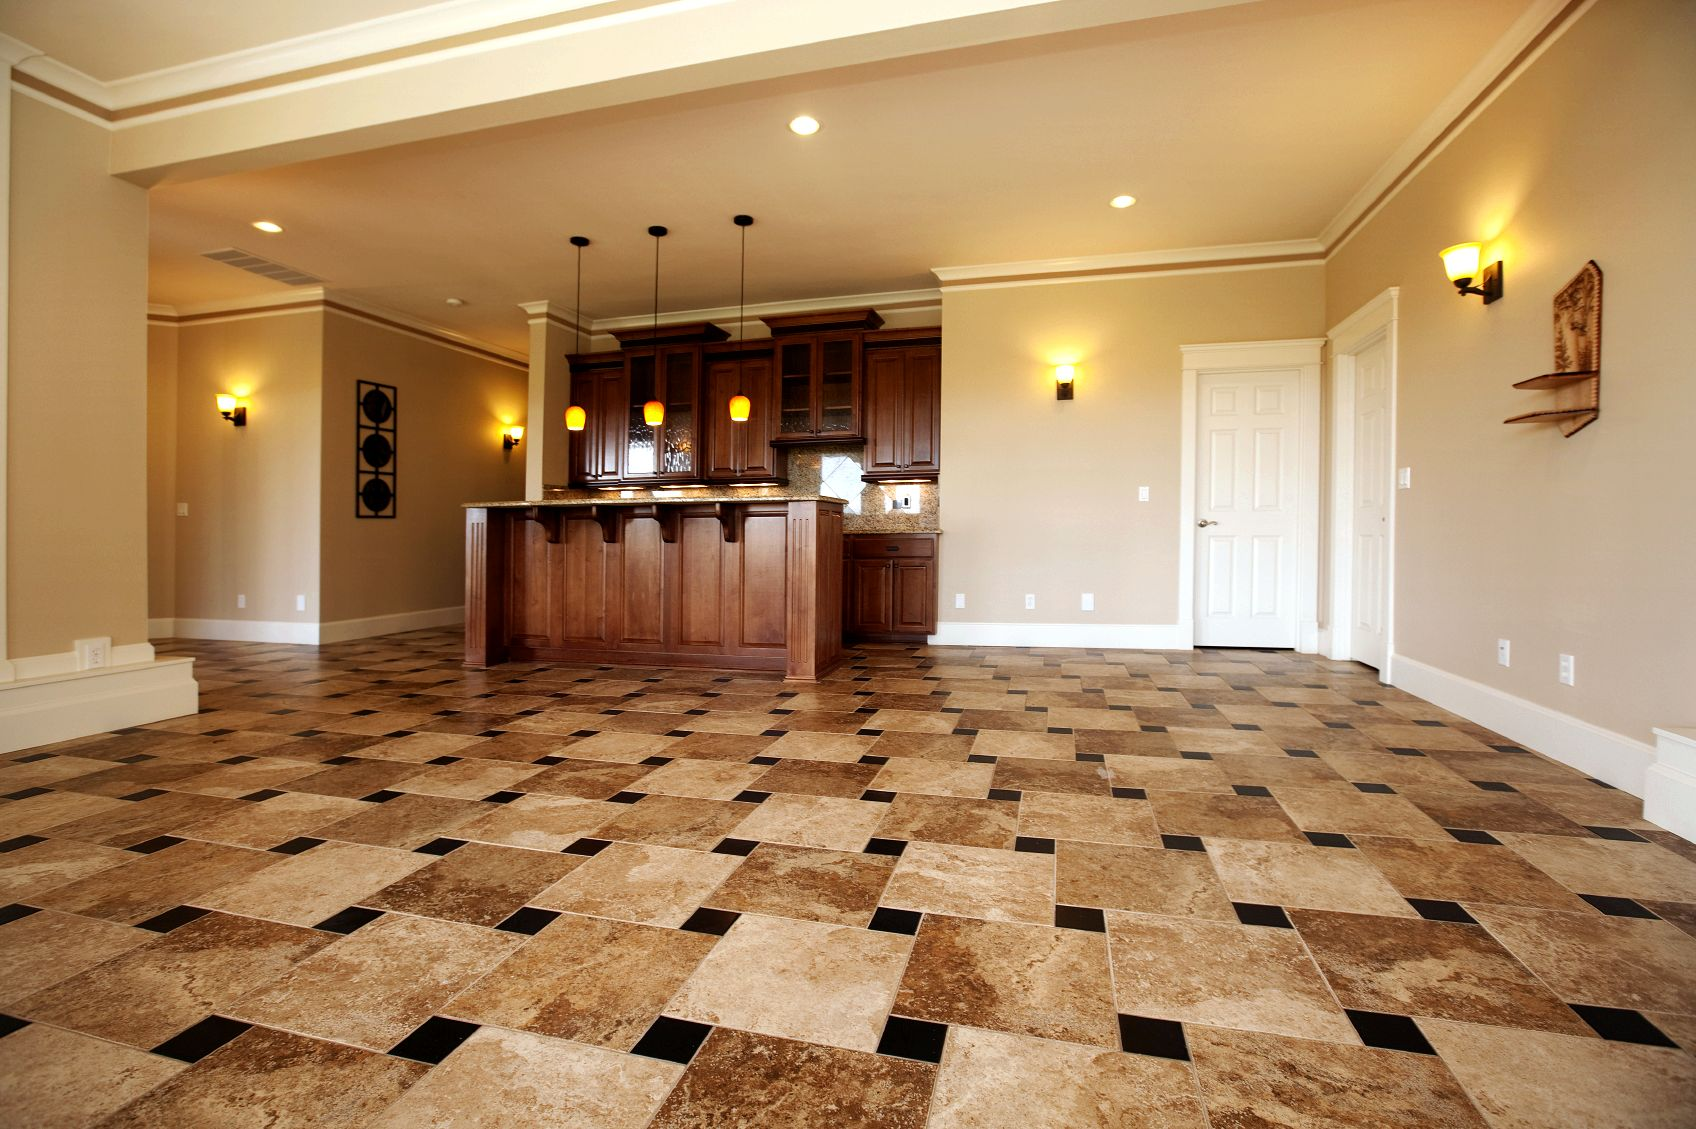 Atlanta stone flooring store scratch resistant, offer